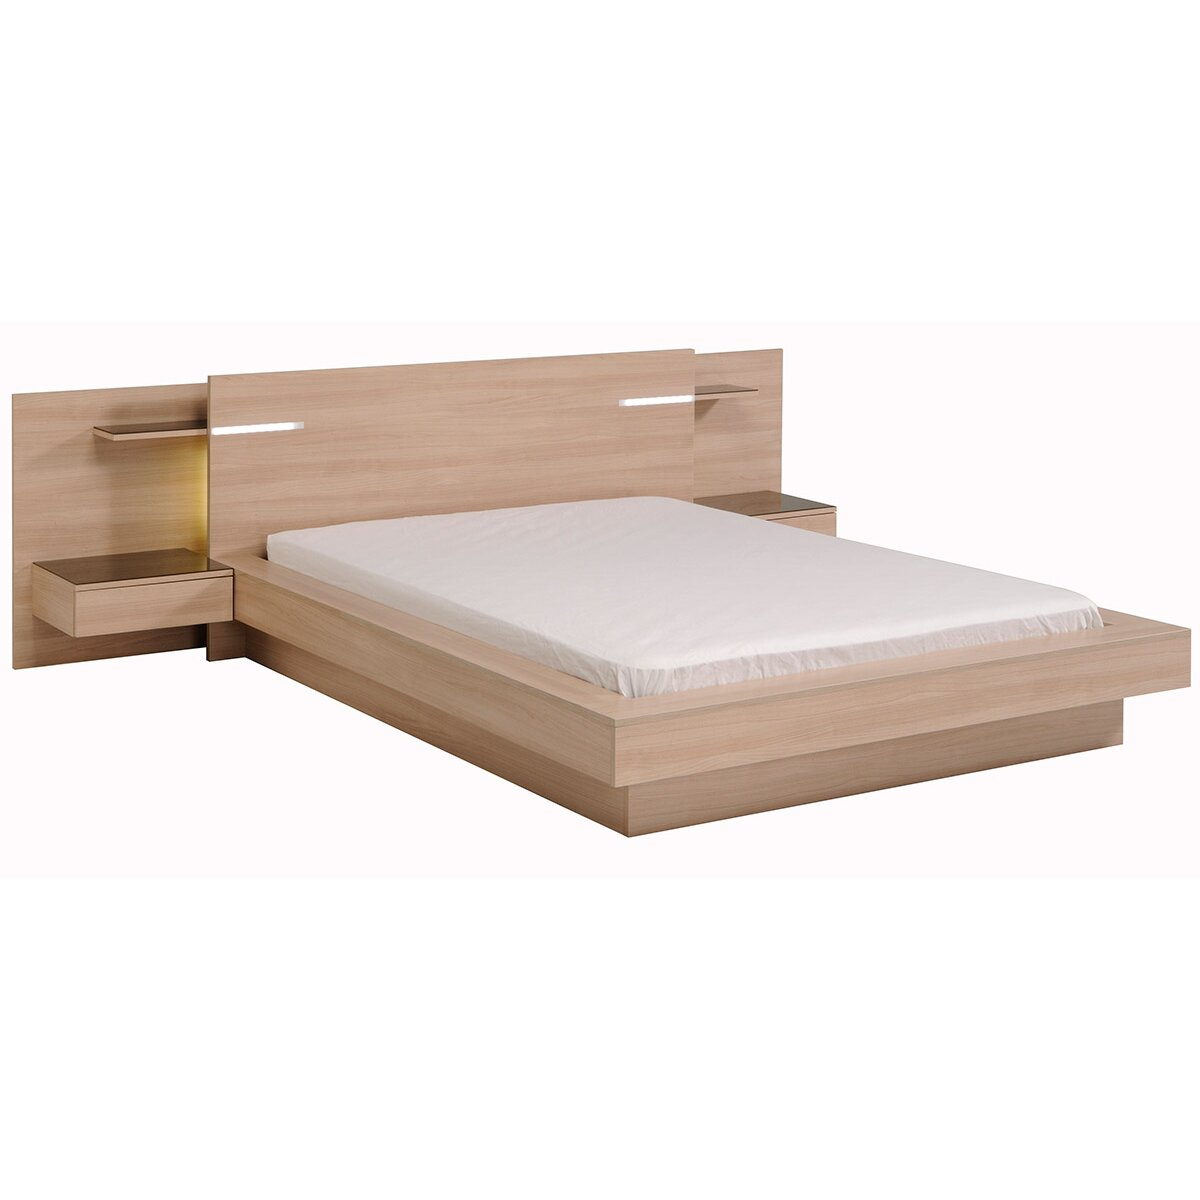 Parisot life queen platform bed for Average lifespan of a mattress